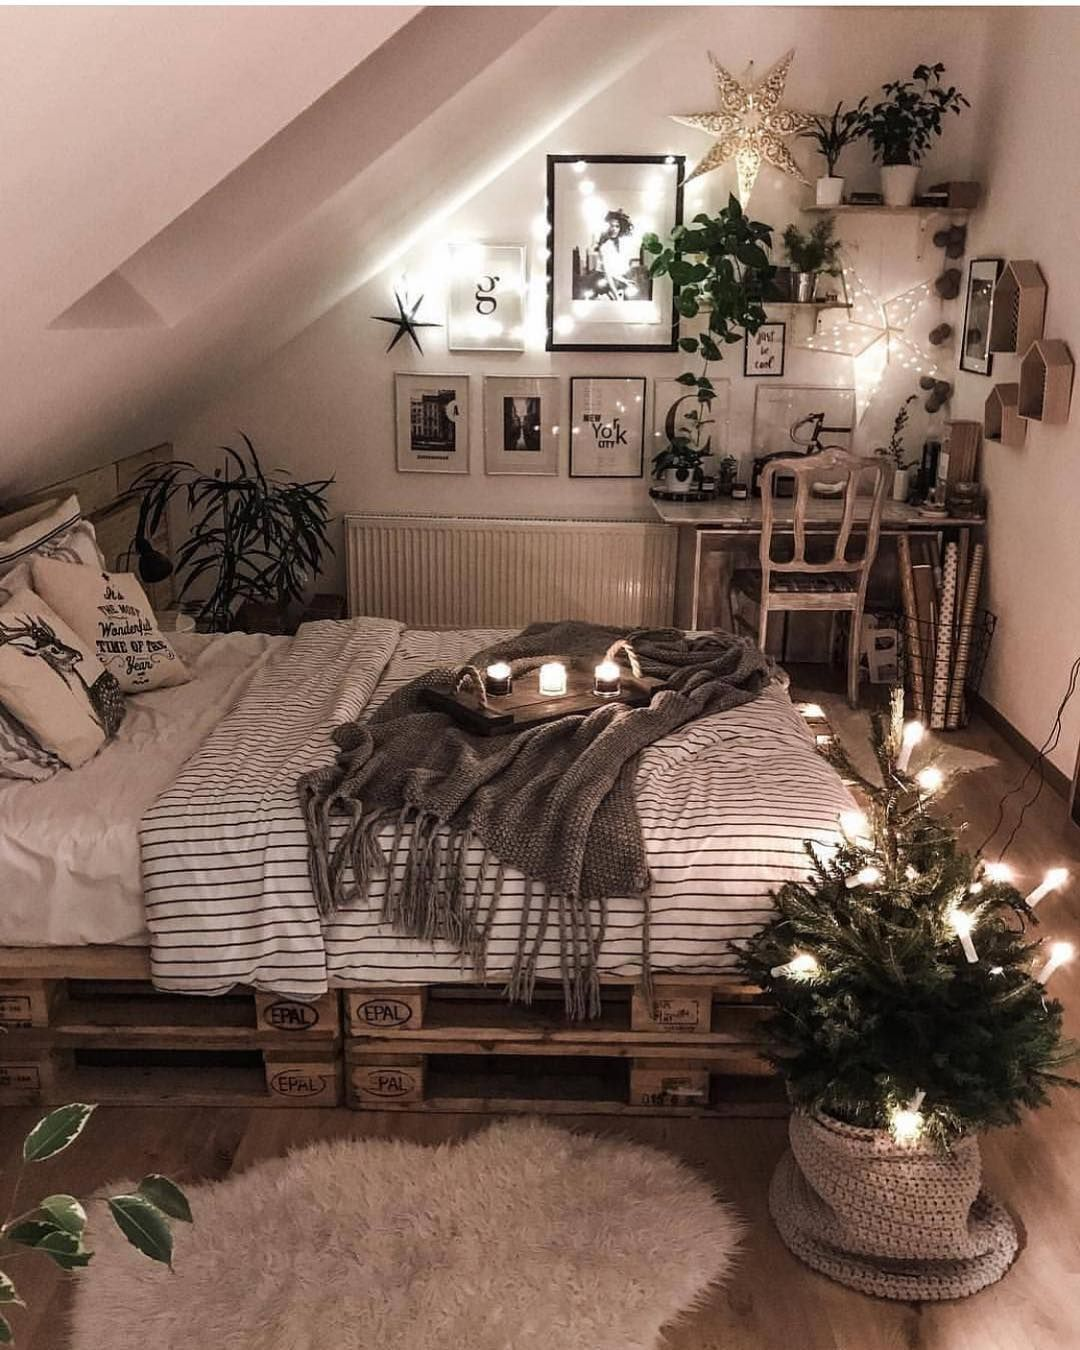 Cozy Boho bedroom inspiration for your Monday! What's your